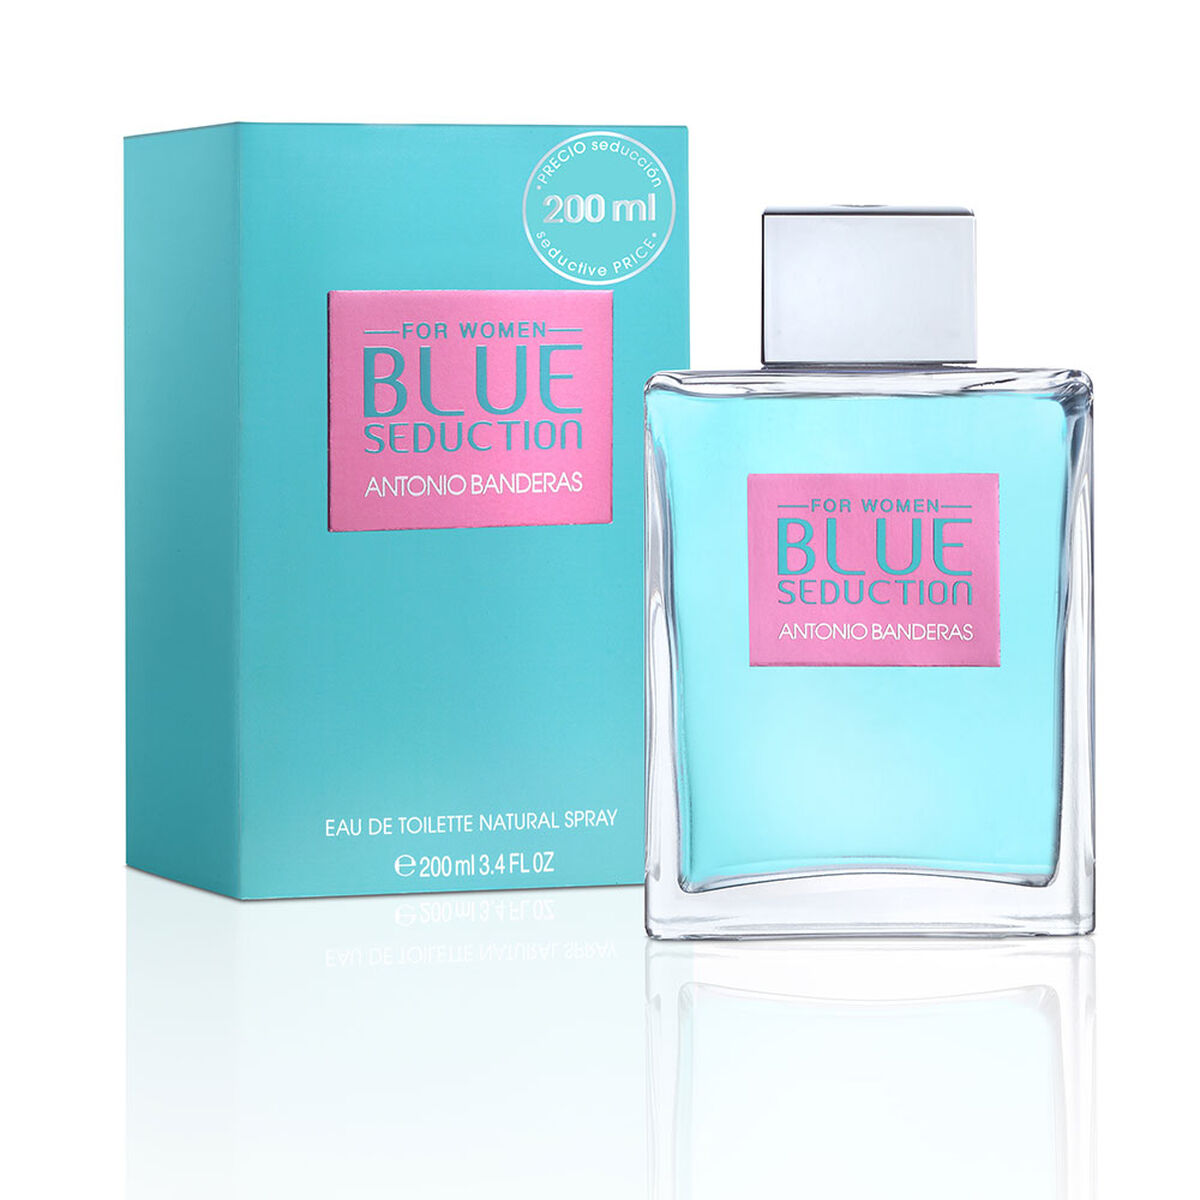 Blue Seduction Woman 200 ml